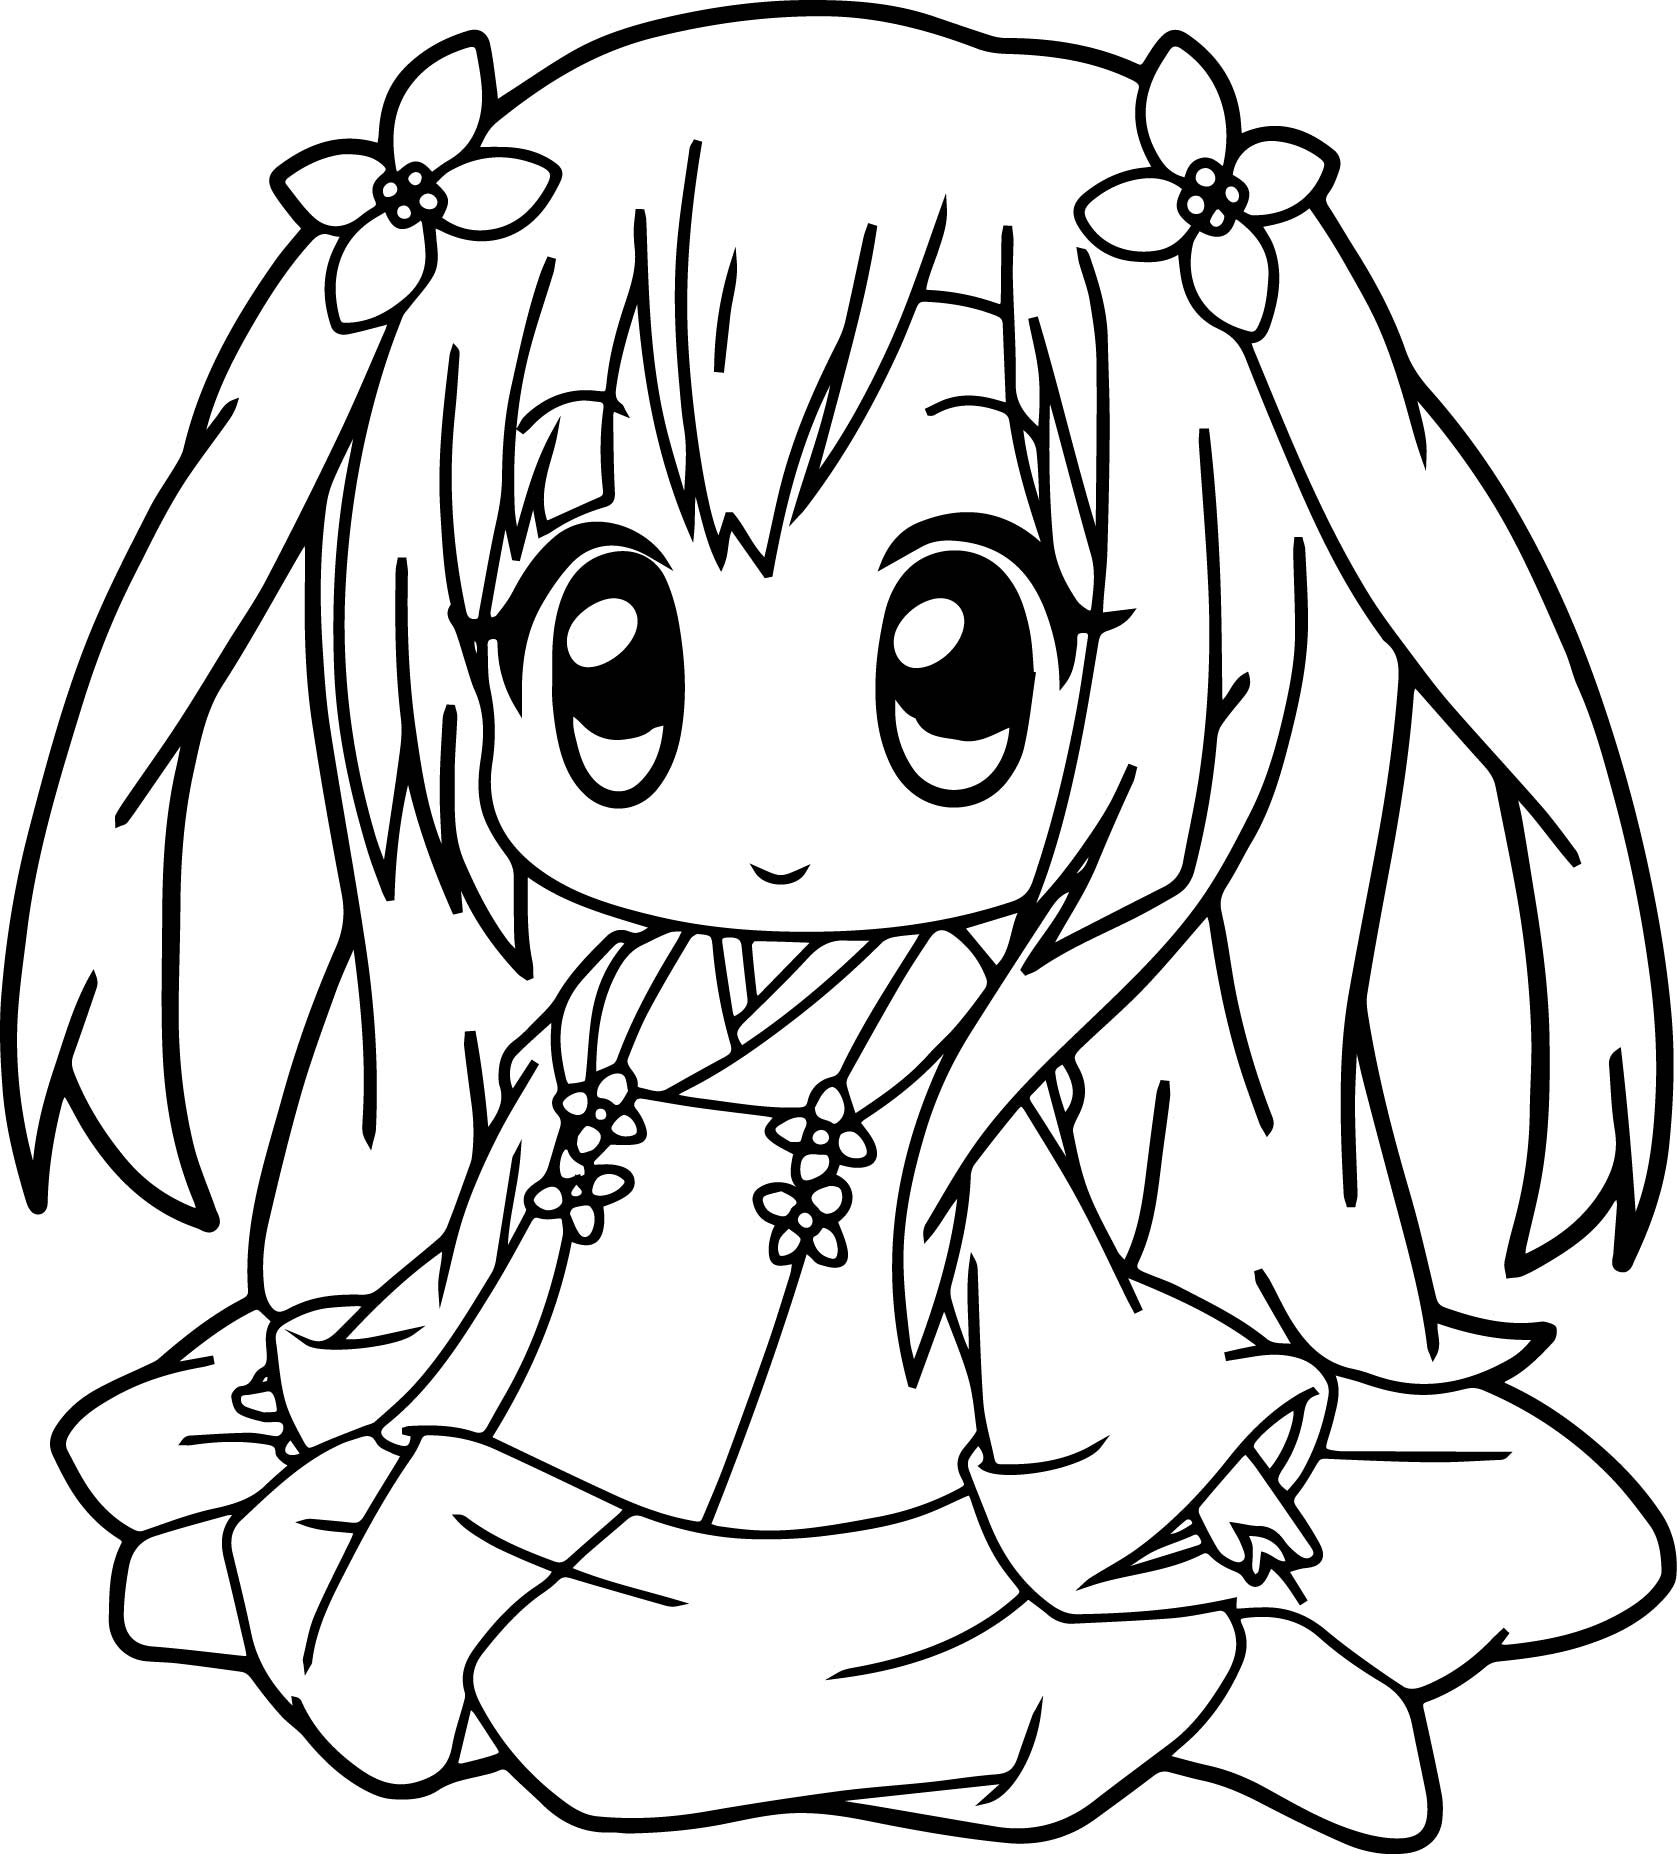 1677x1854 Anime Girl Coloring Pages Printable Coloring Pages